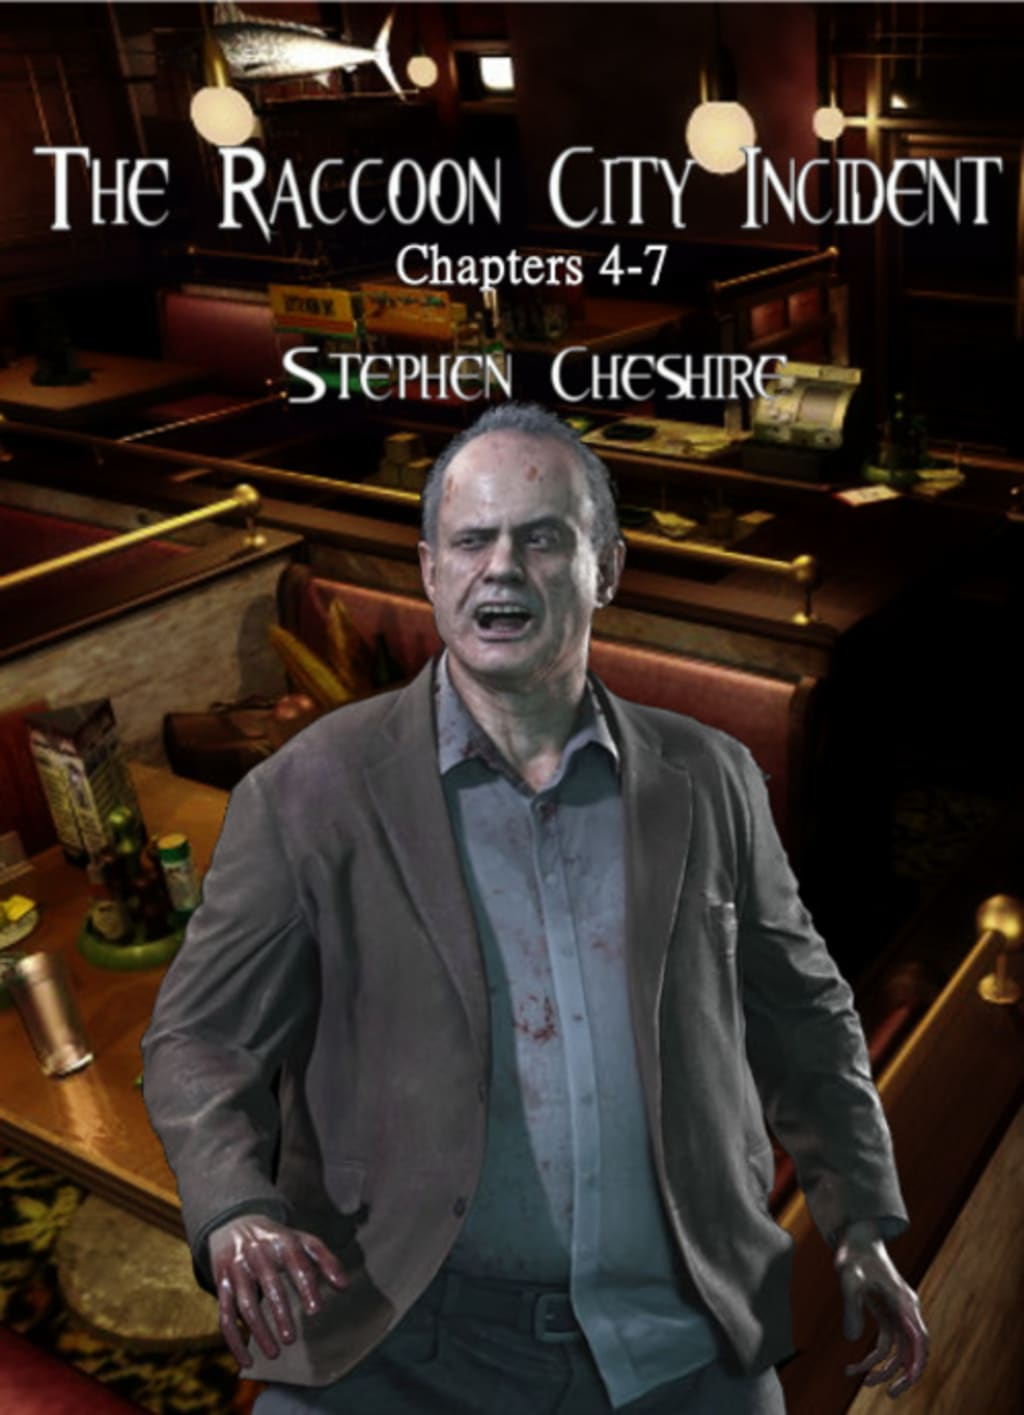 The Raccoon City Incident